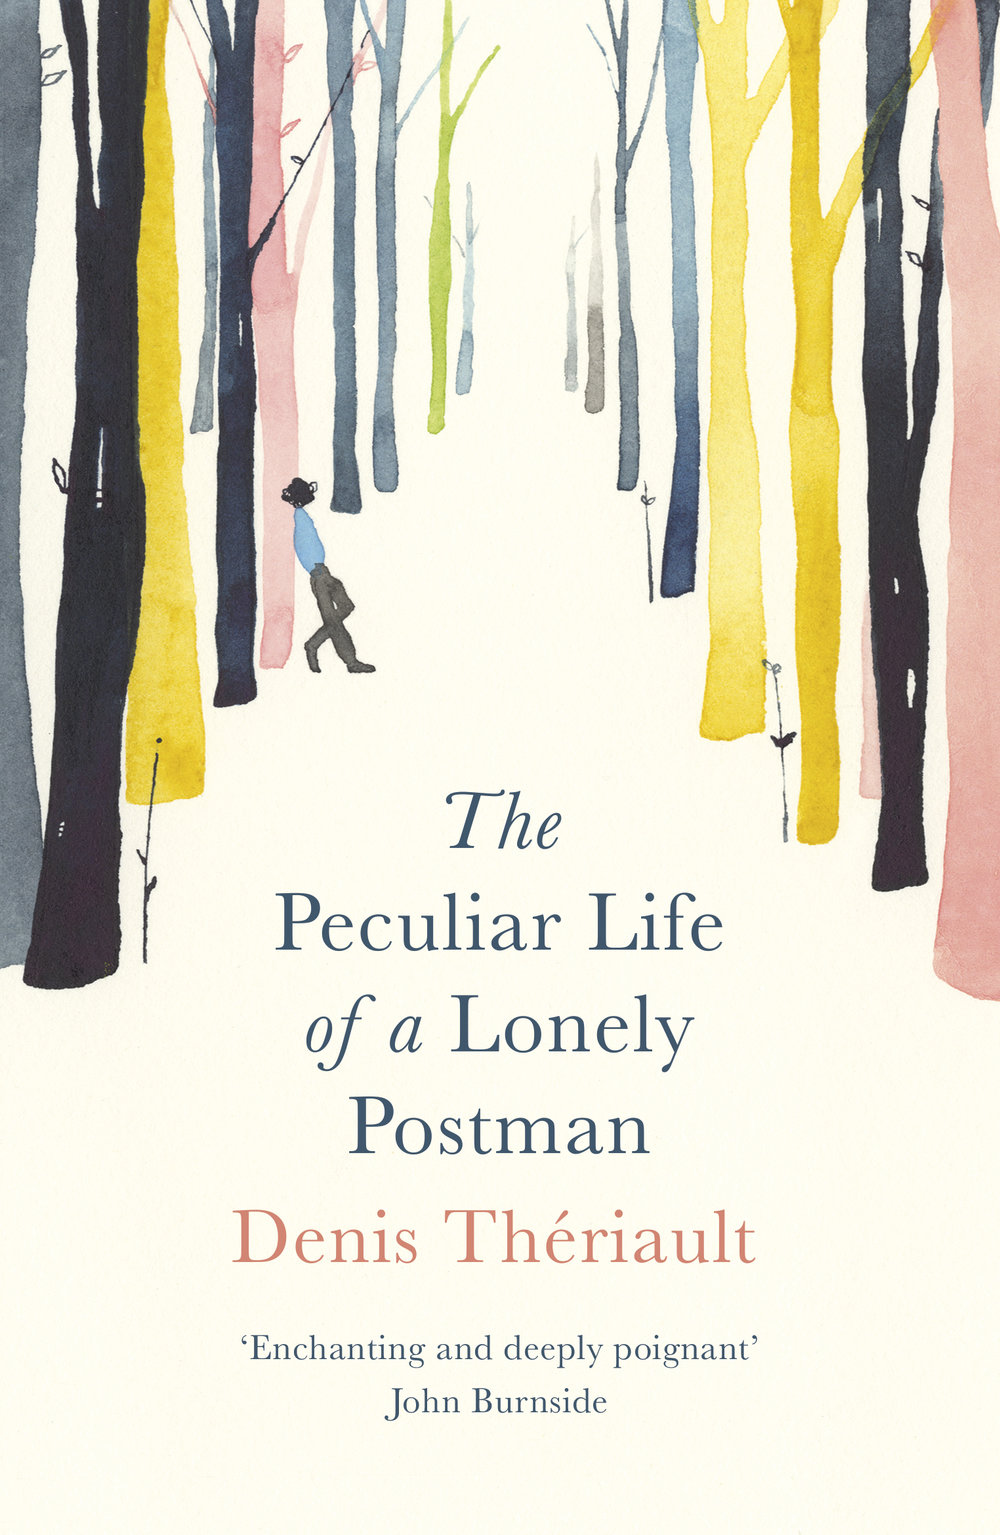 The_Peculiar_Life_of_a_Lonely_Postman_9781786070531.jpg